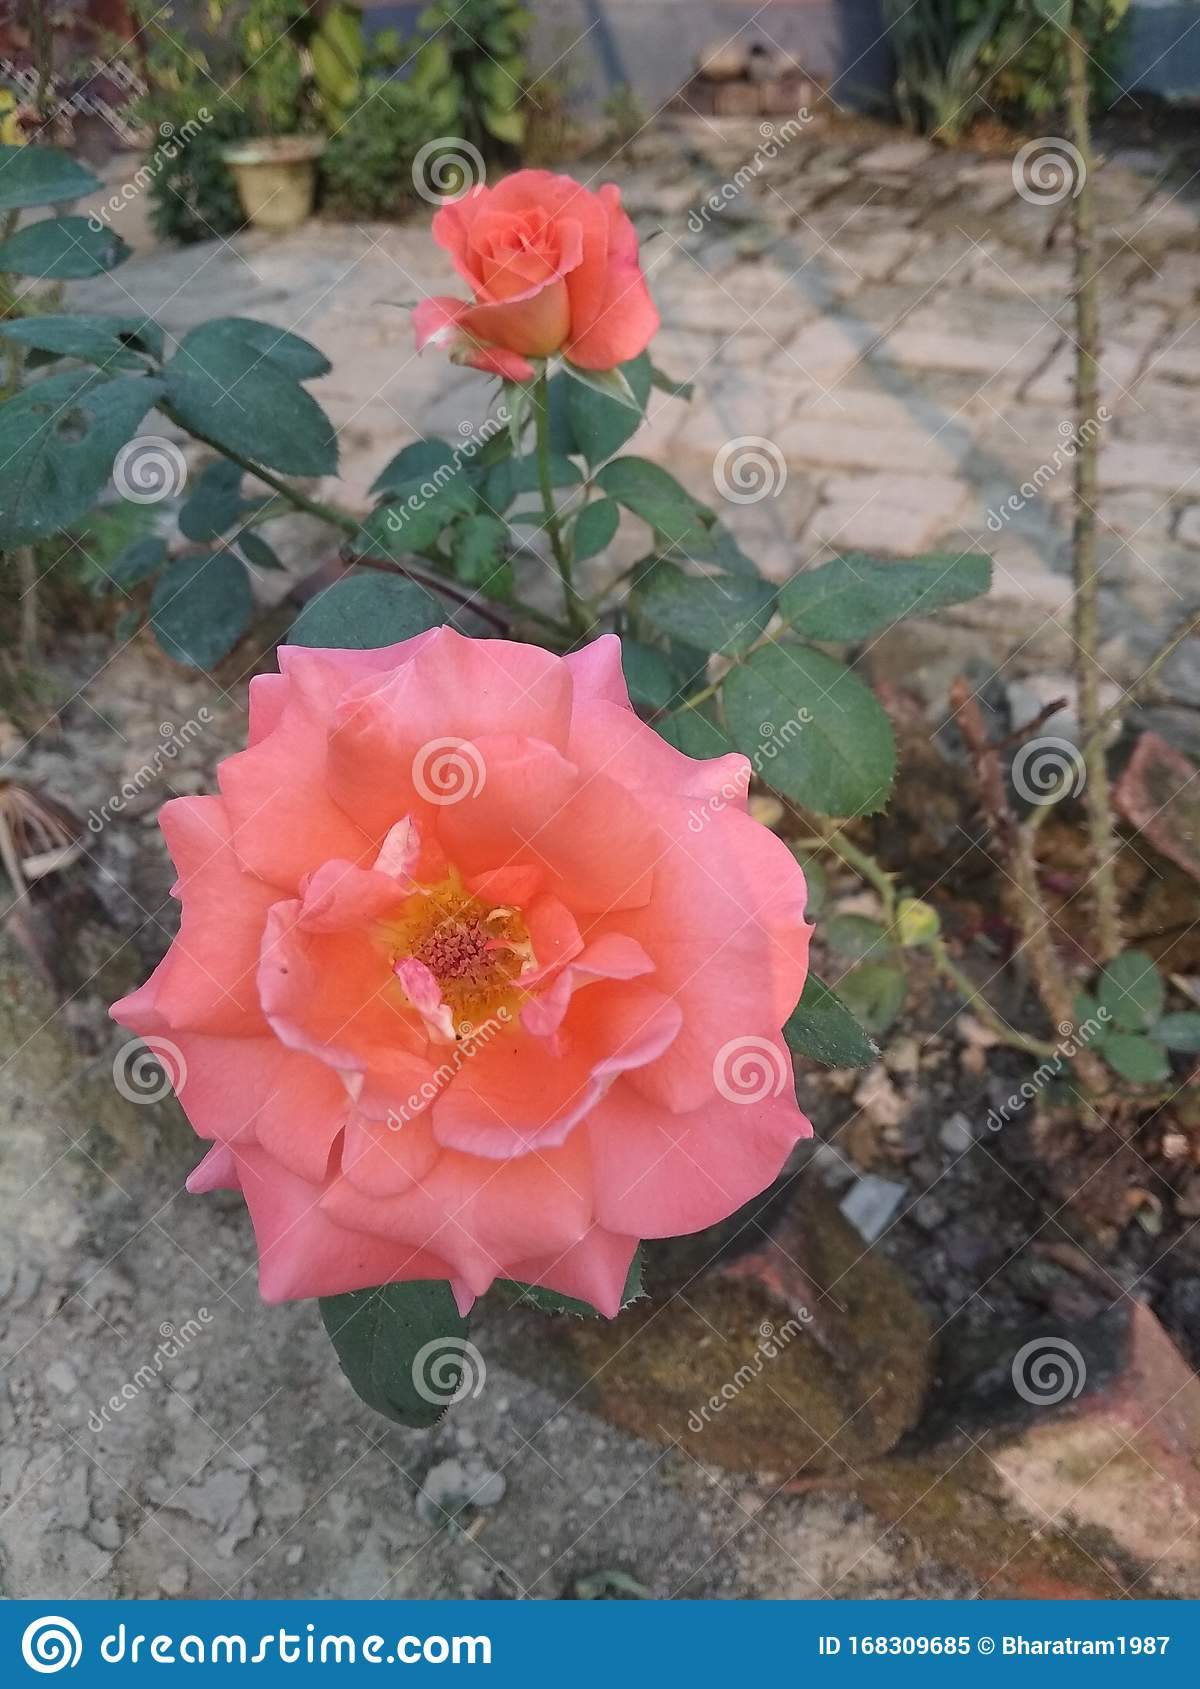 Indian Rose In Home Garden Stock Image Image Of Home 168309685